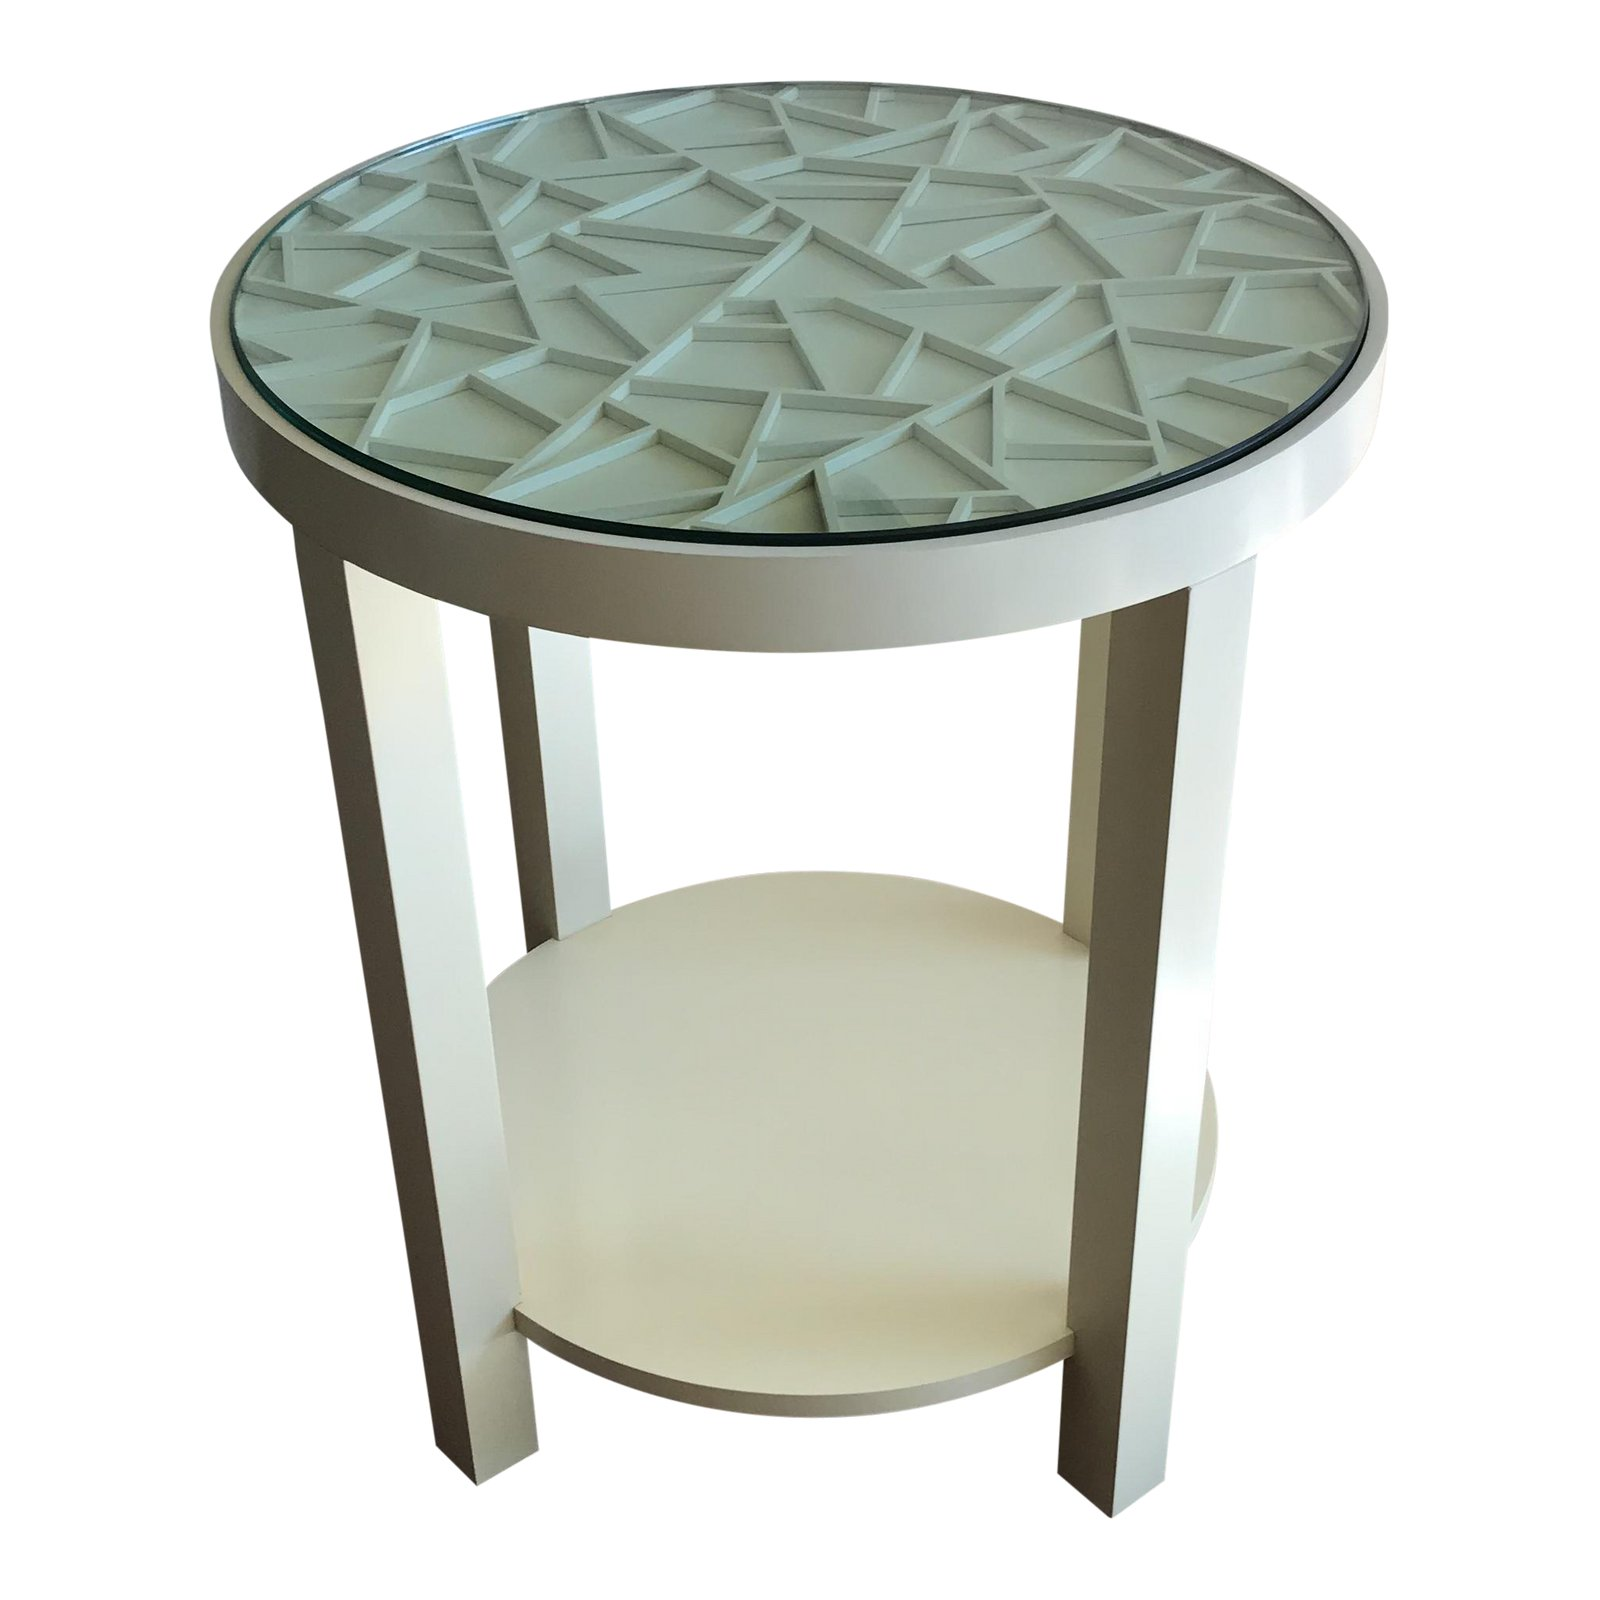 baker furniture round off white with glass top accent table chairish square dining room oval lucite coffee chairs edmonton wood and end tables blue porcelain lamps tall console